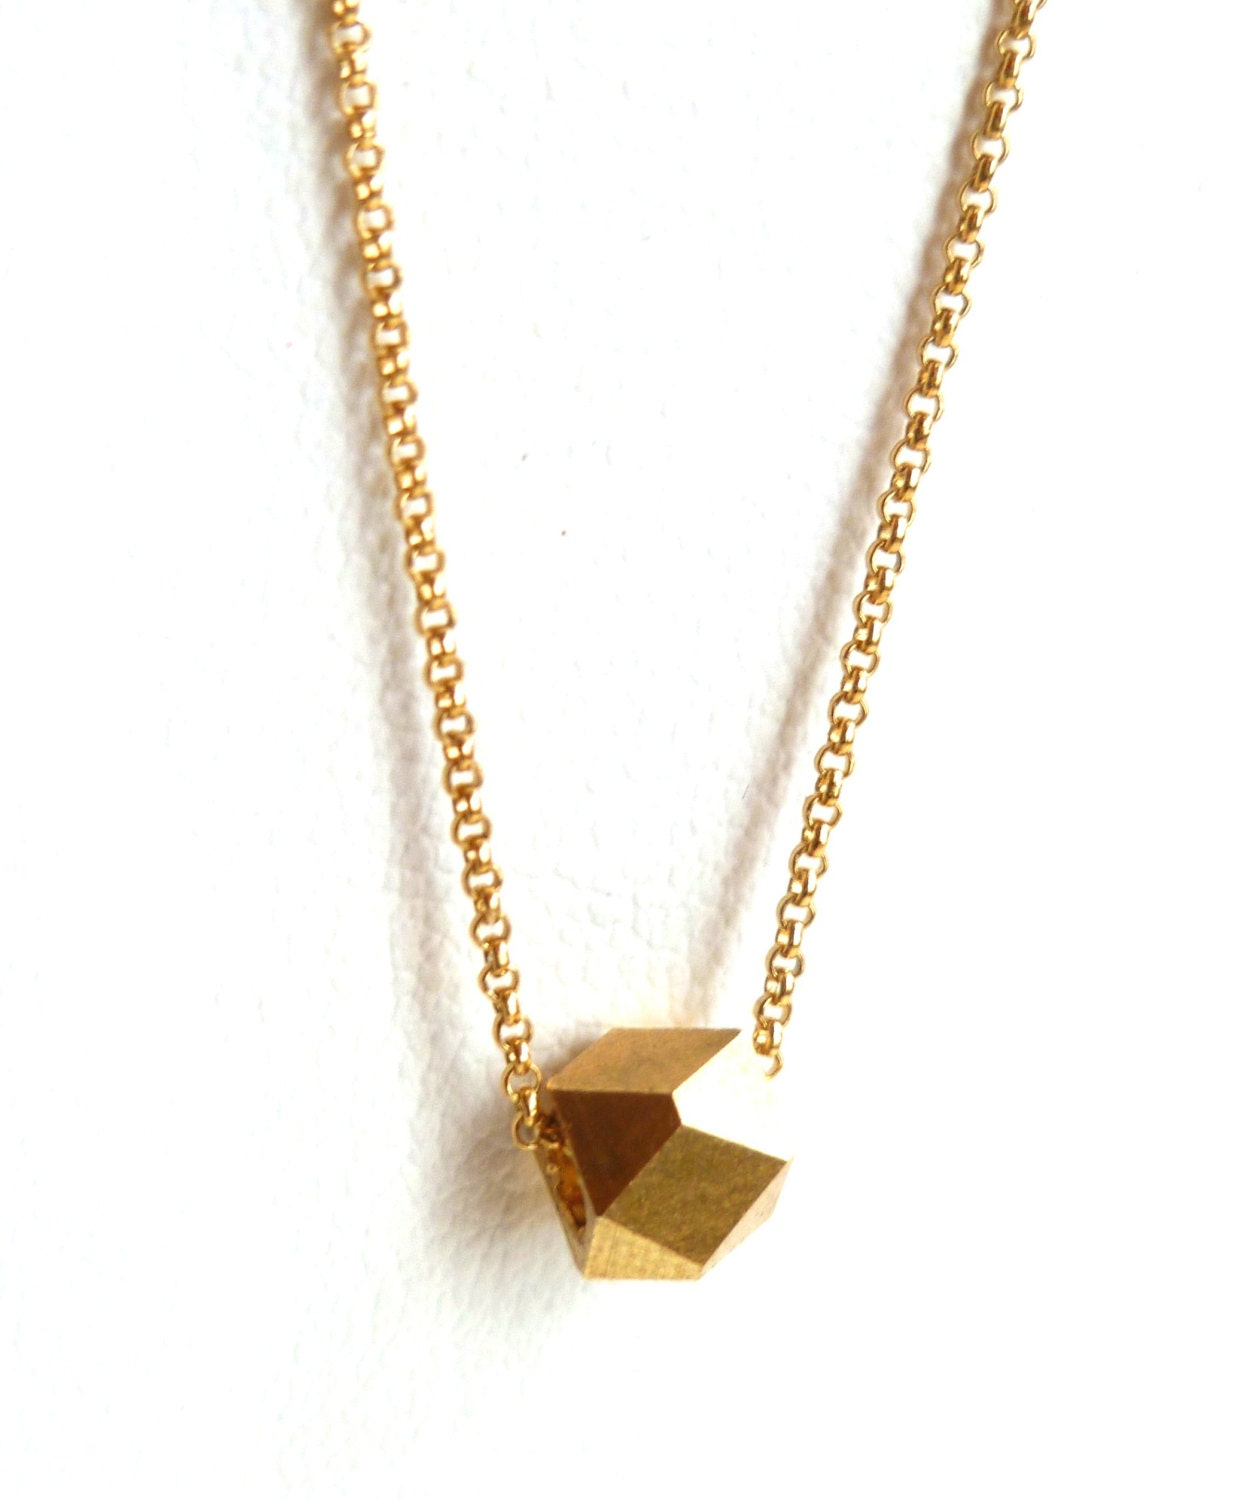 Thin Gold Chain Bracelet: Thin Gold Chain Necklace With Gold Prism Pendant By